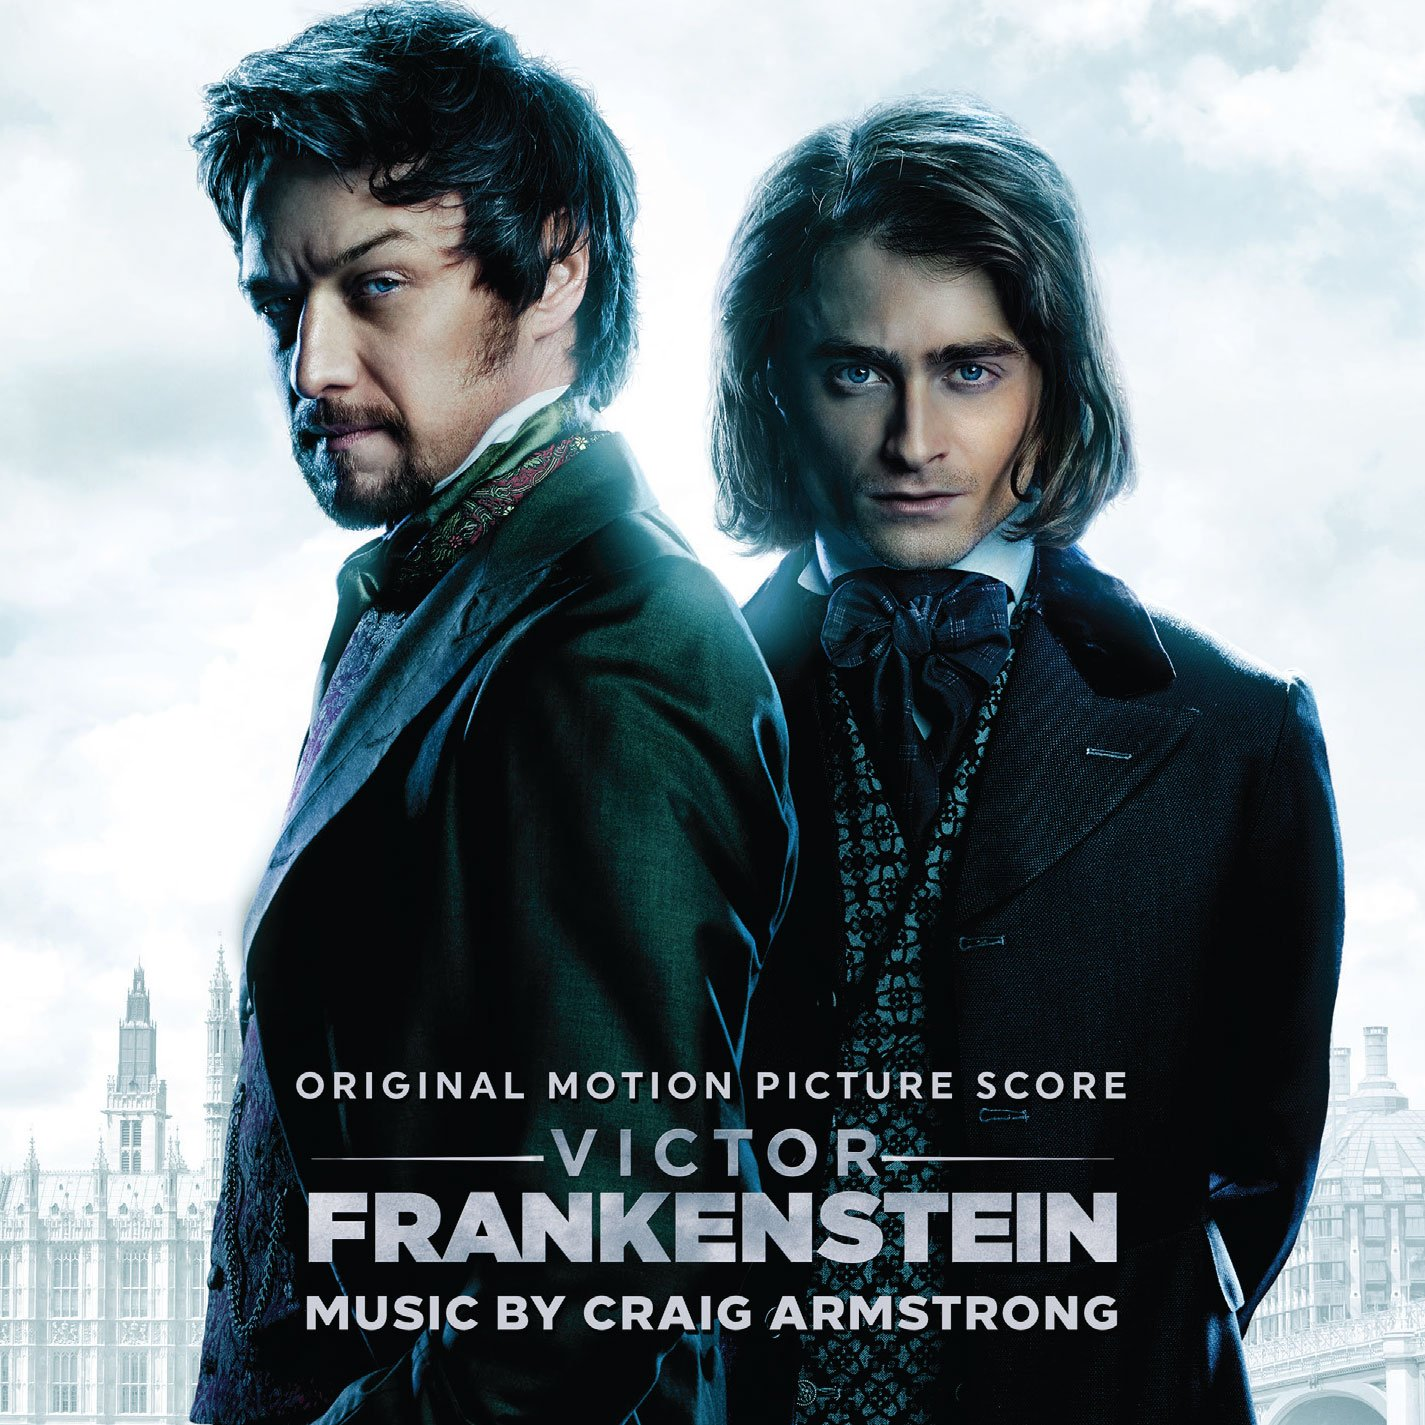 bande originale soundtrack ost score docteur victor frankenstein disney fox